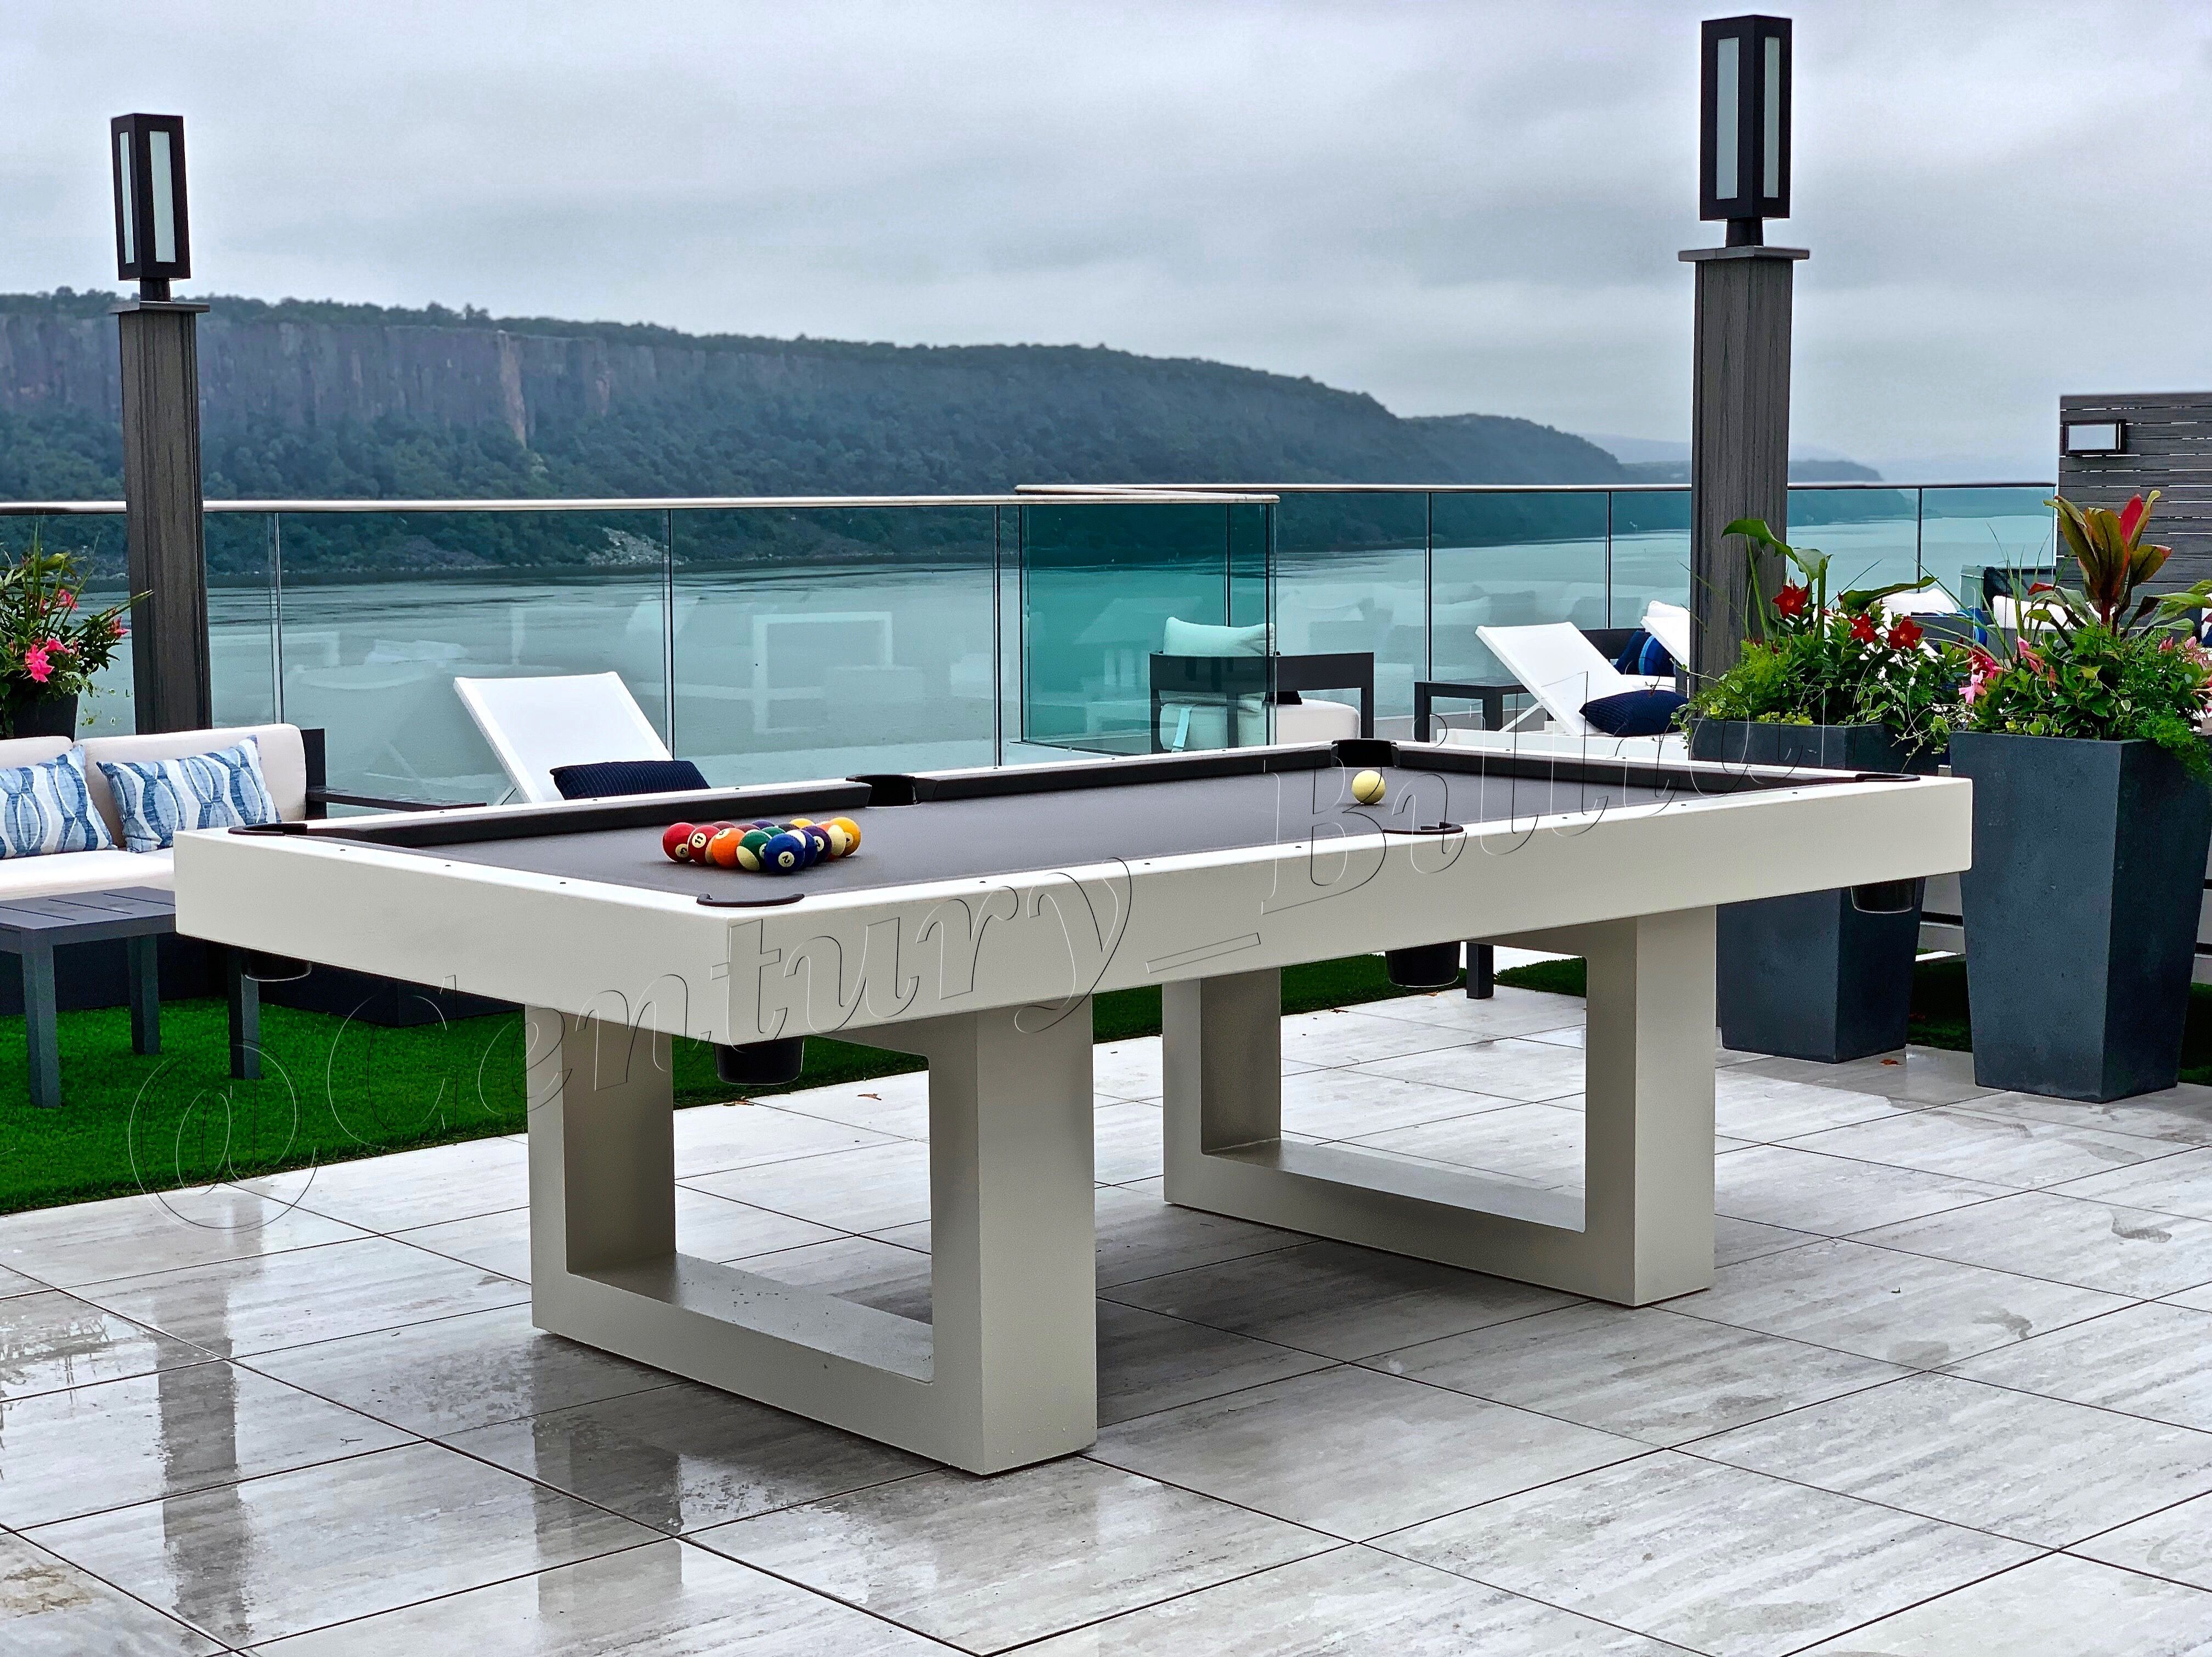 Custom Outdoor Pool Table Outdoor Pool Table Outdoor Pool Pool House Interiors Modern outdoor pool table